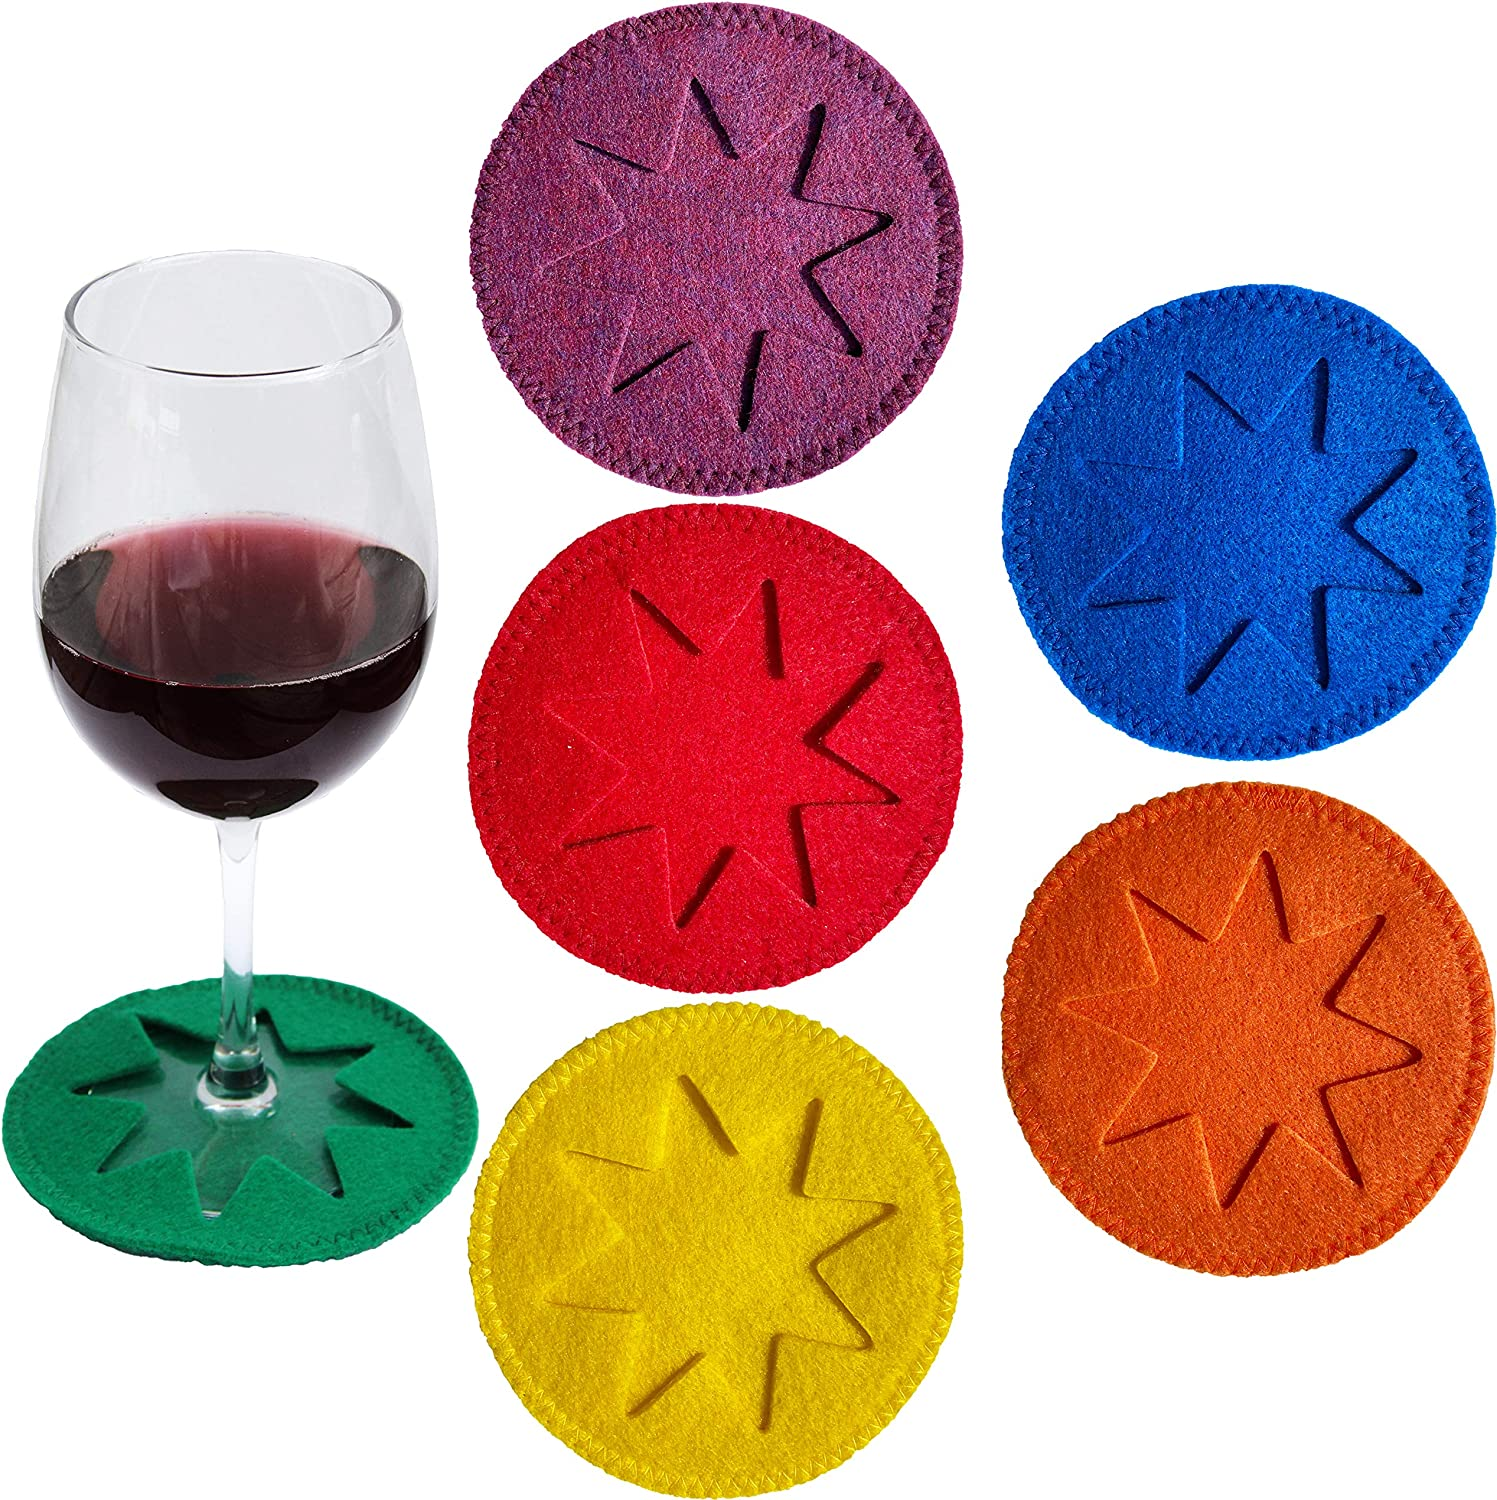 Drinks Mug Cup Mats HAND MADE In The UK Decor Home Dining Set of 6 Autumn Wine Leather Coasters